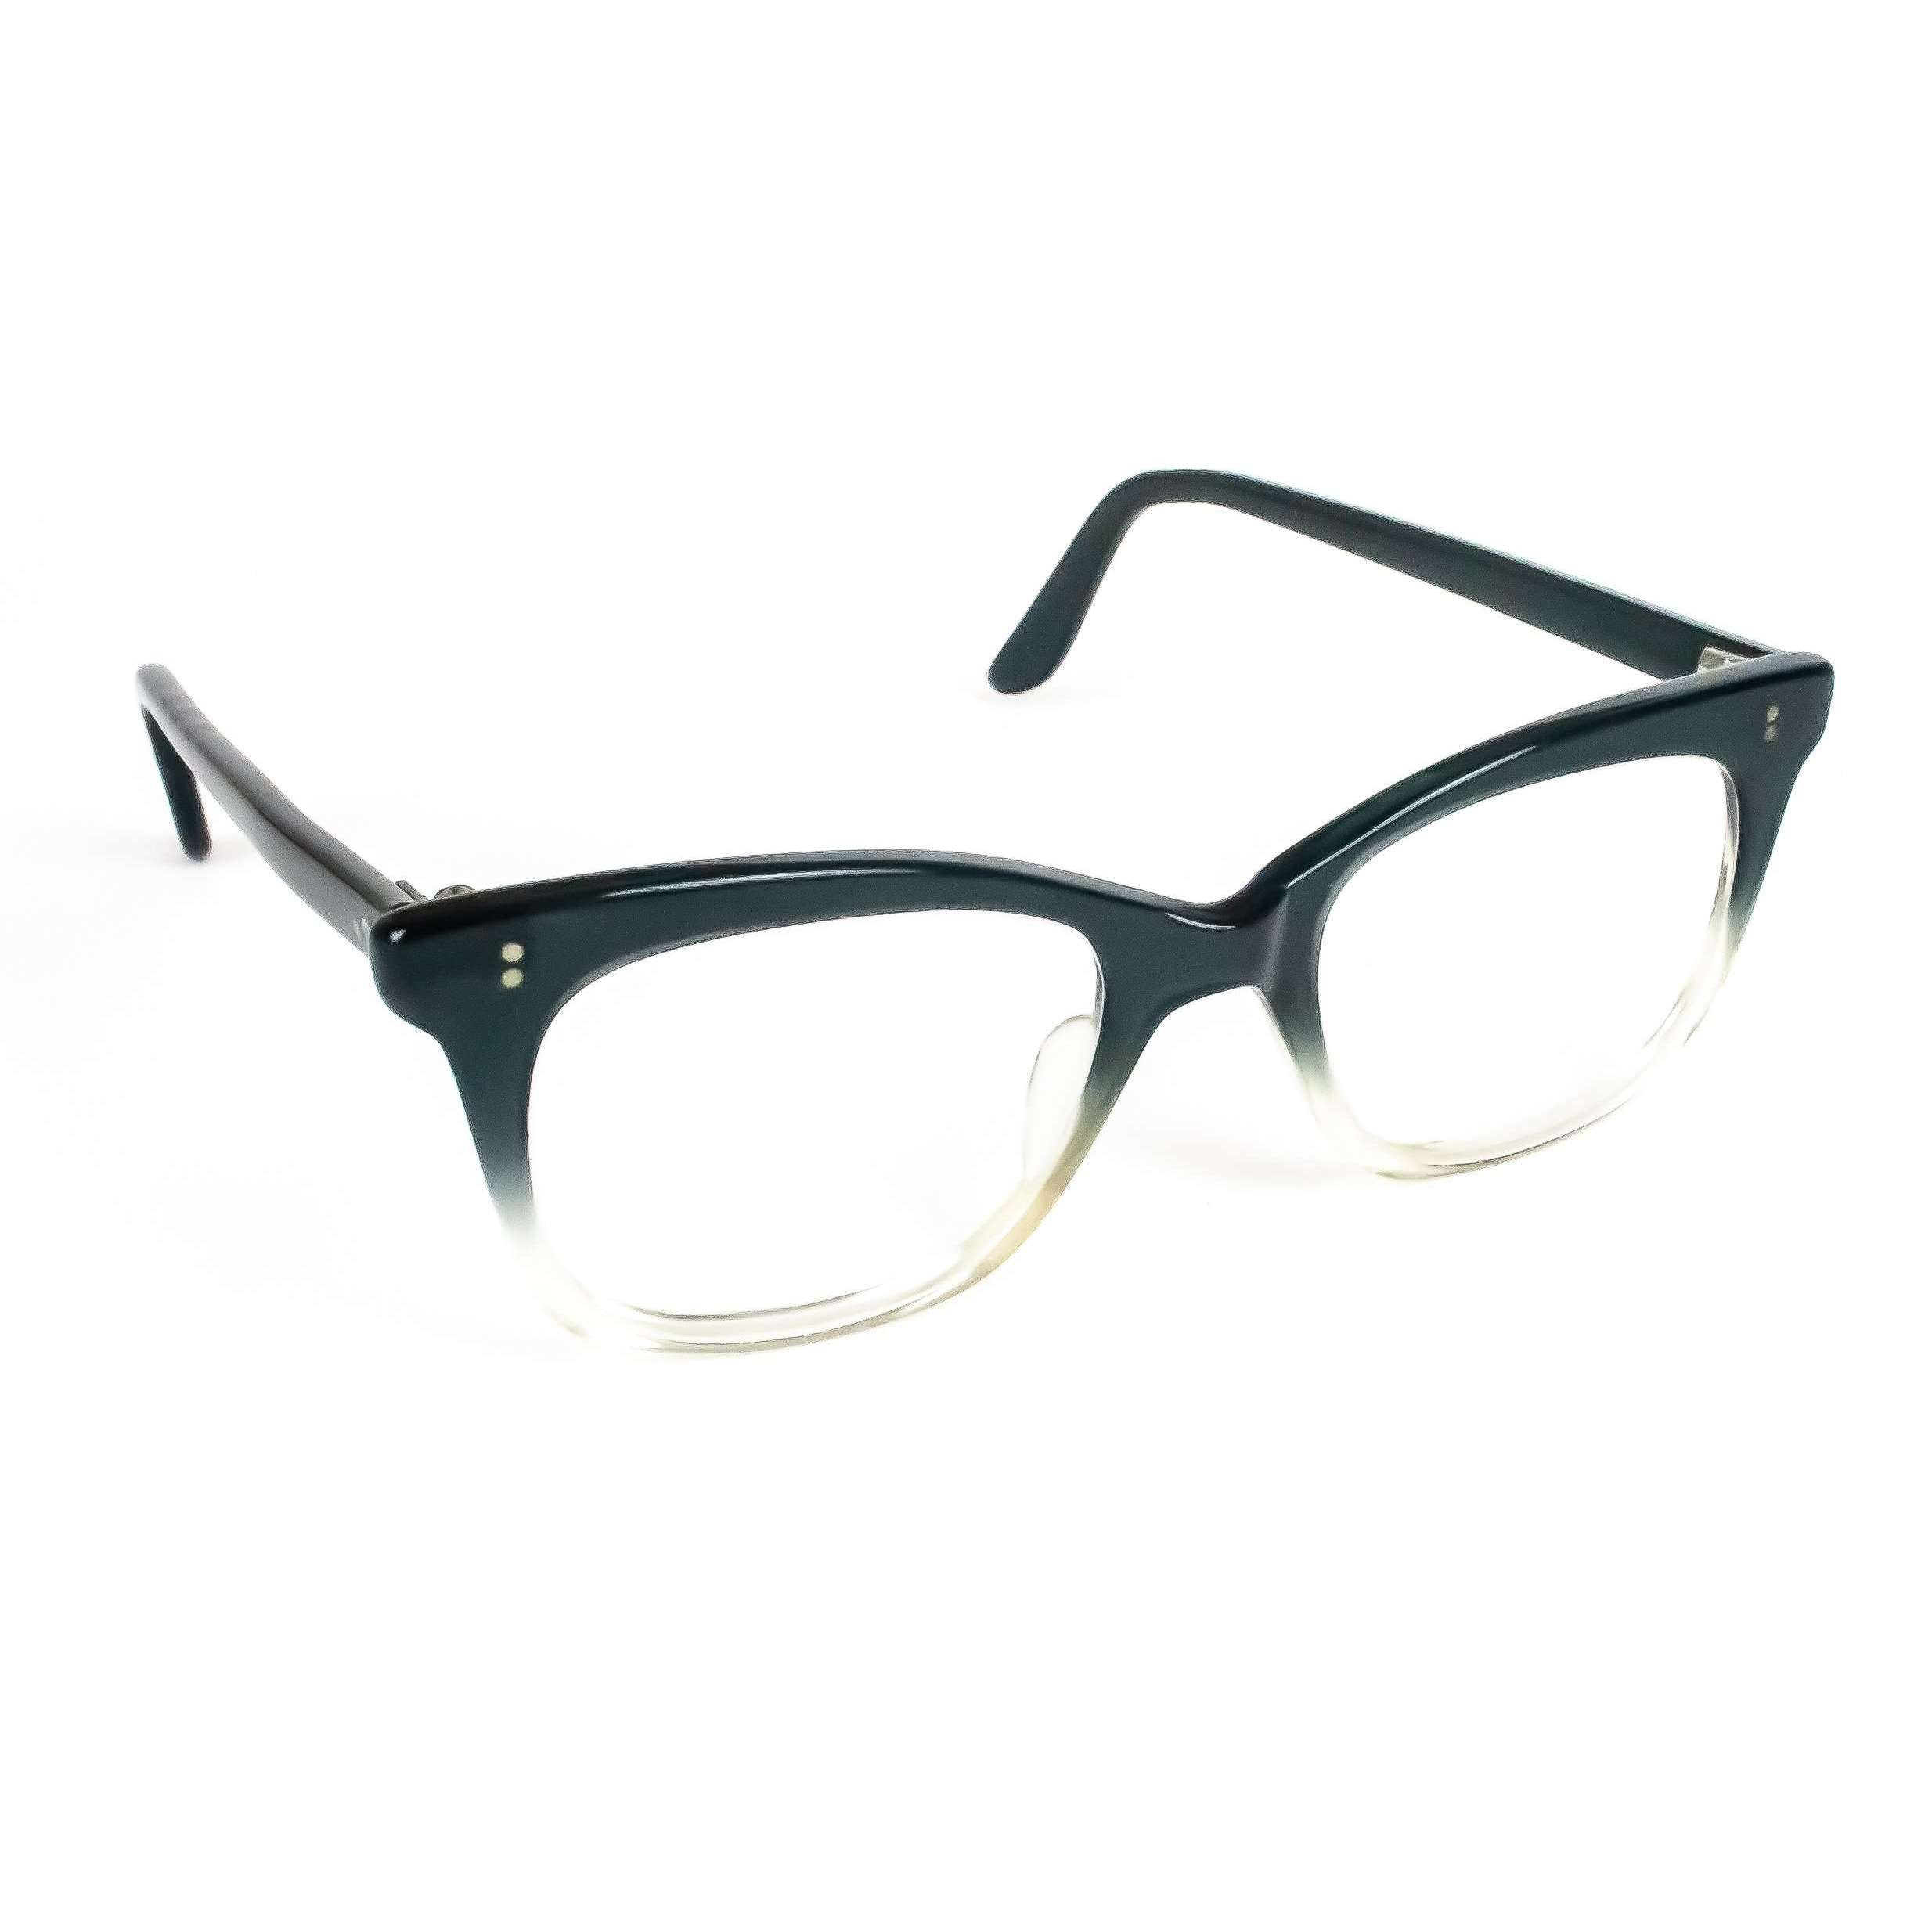 Alfie Black Square Glasses